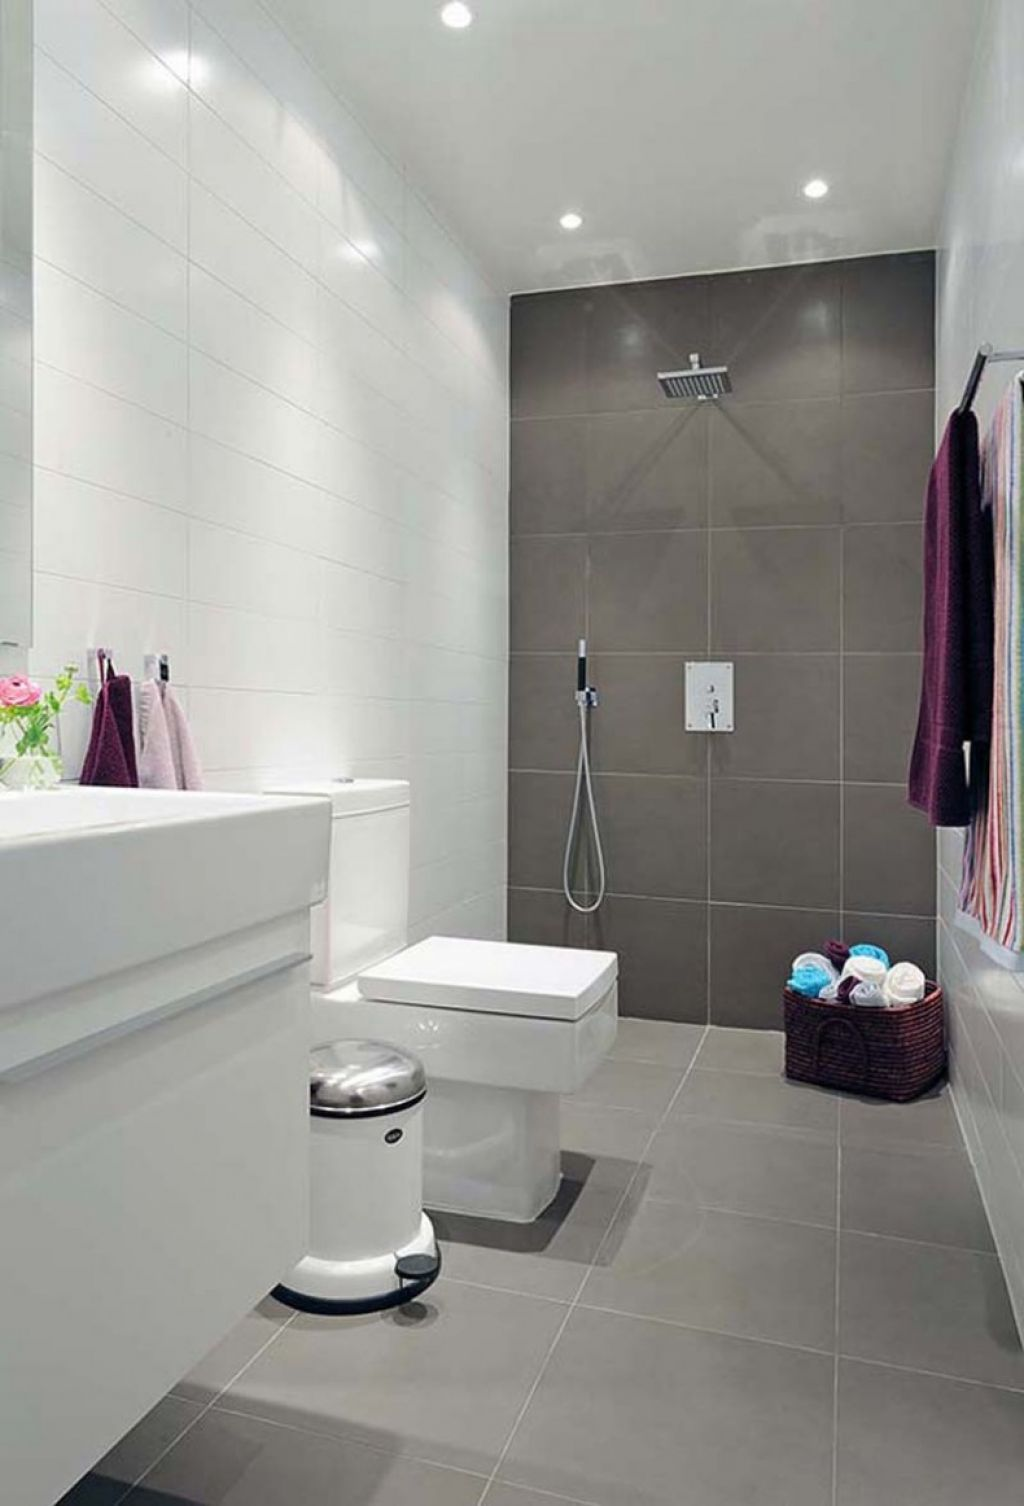 Modern Bathroom With Same Tile On Floor And Wall Main